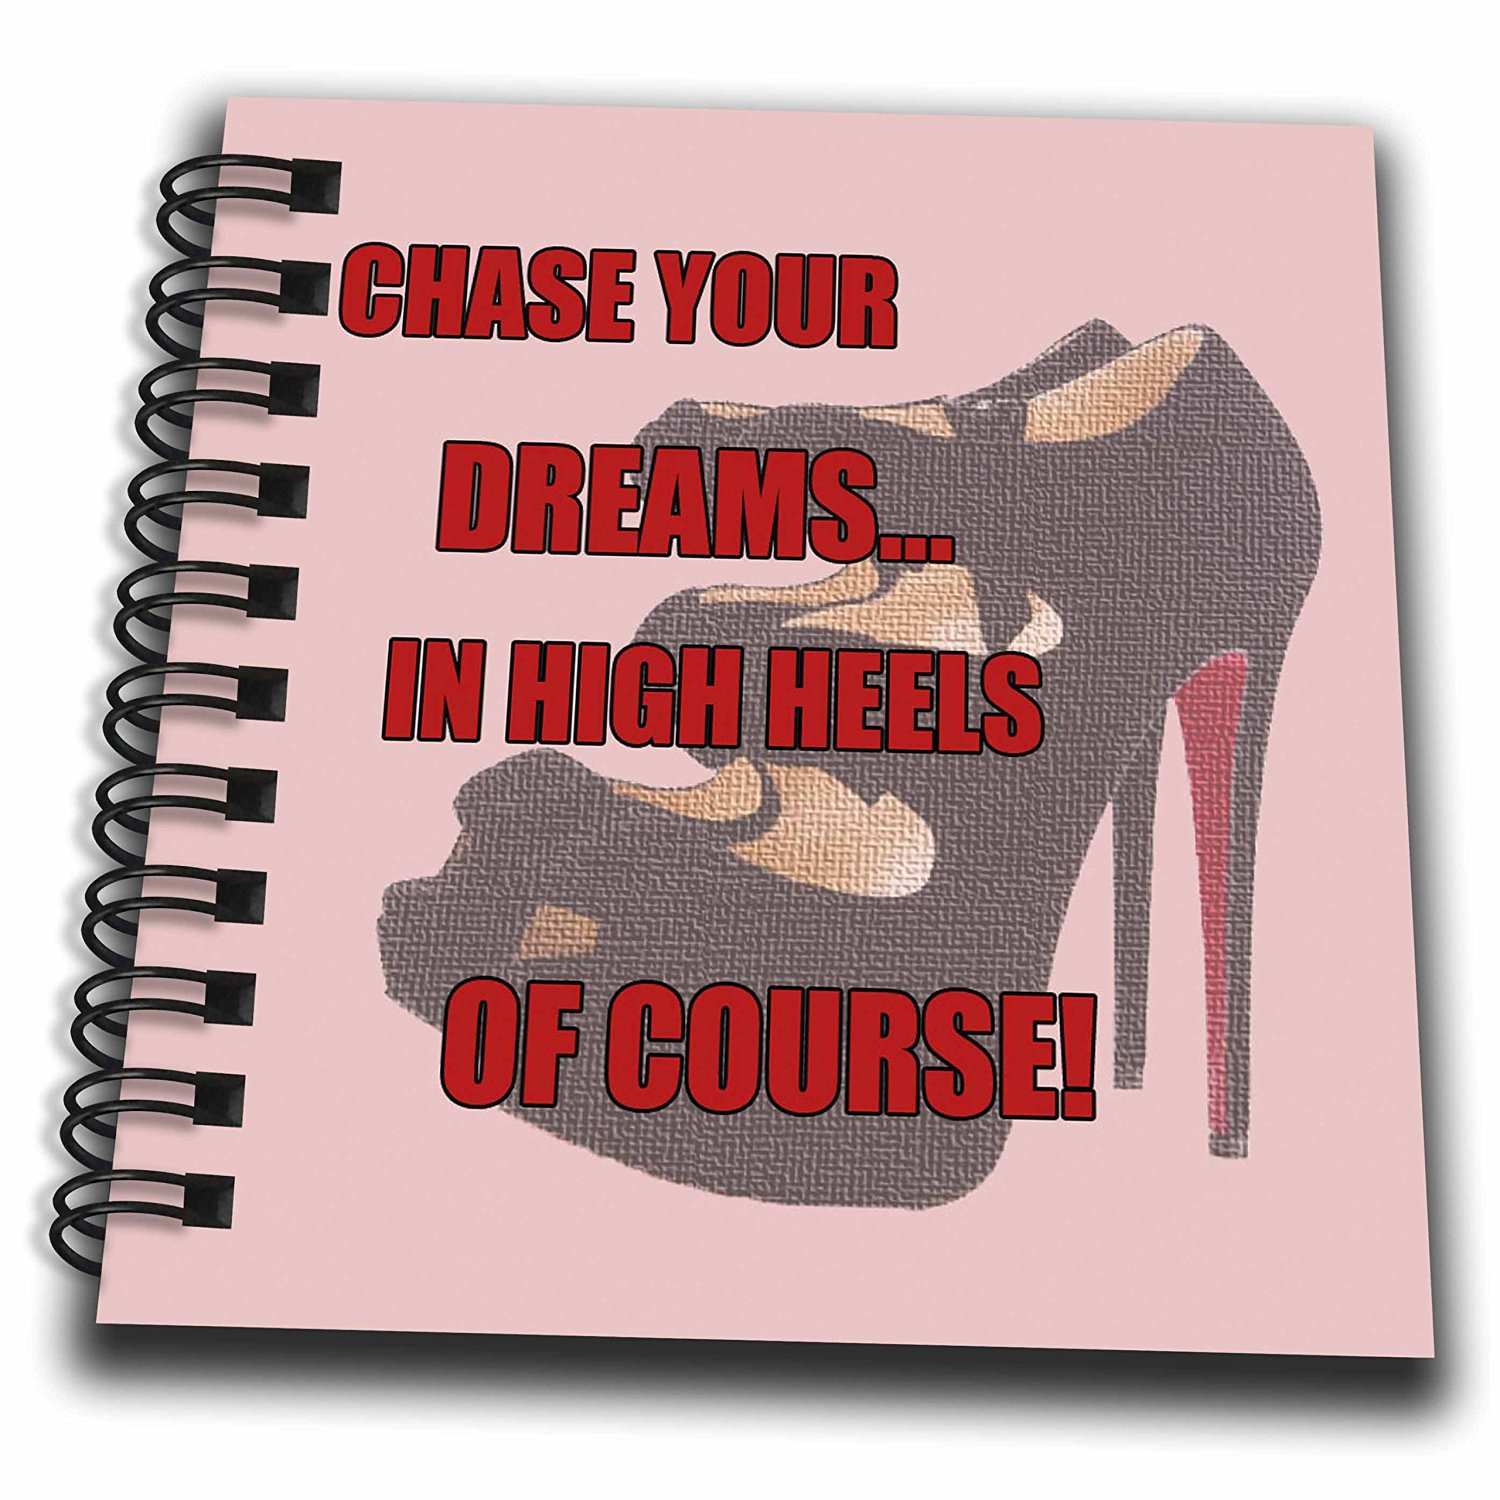 Rinapiro funny quotes high heels shoes chase your dreams in high heels of